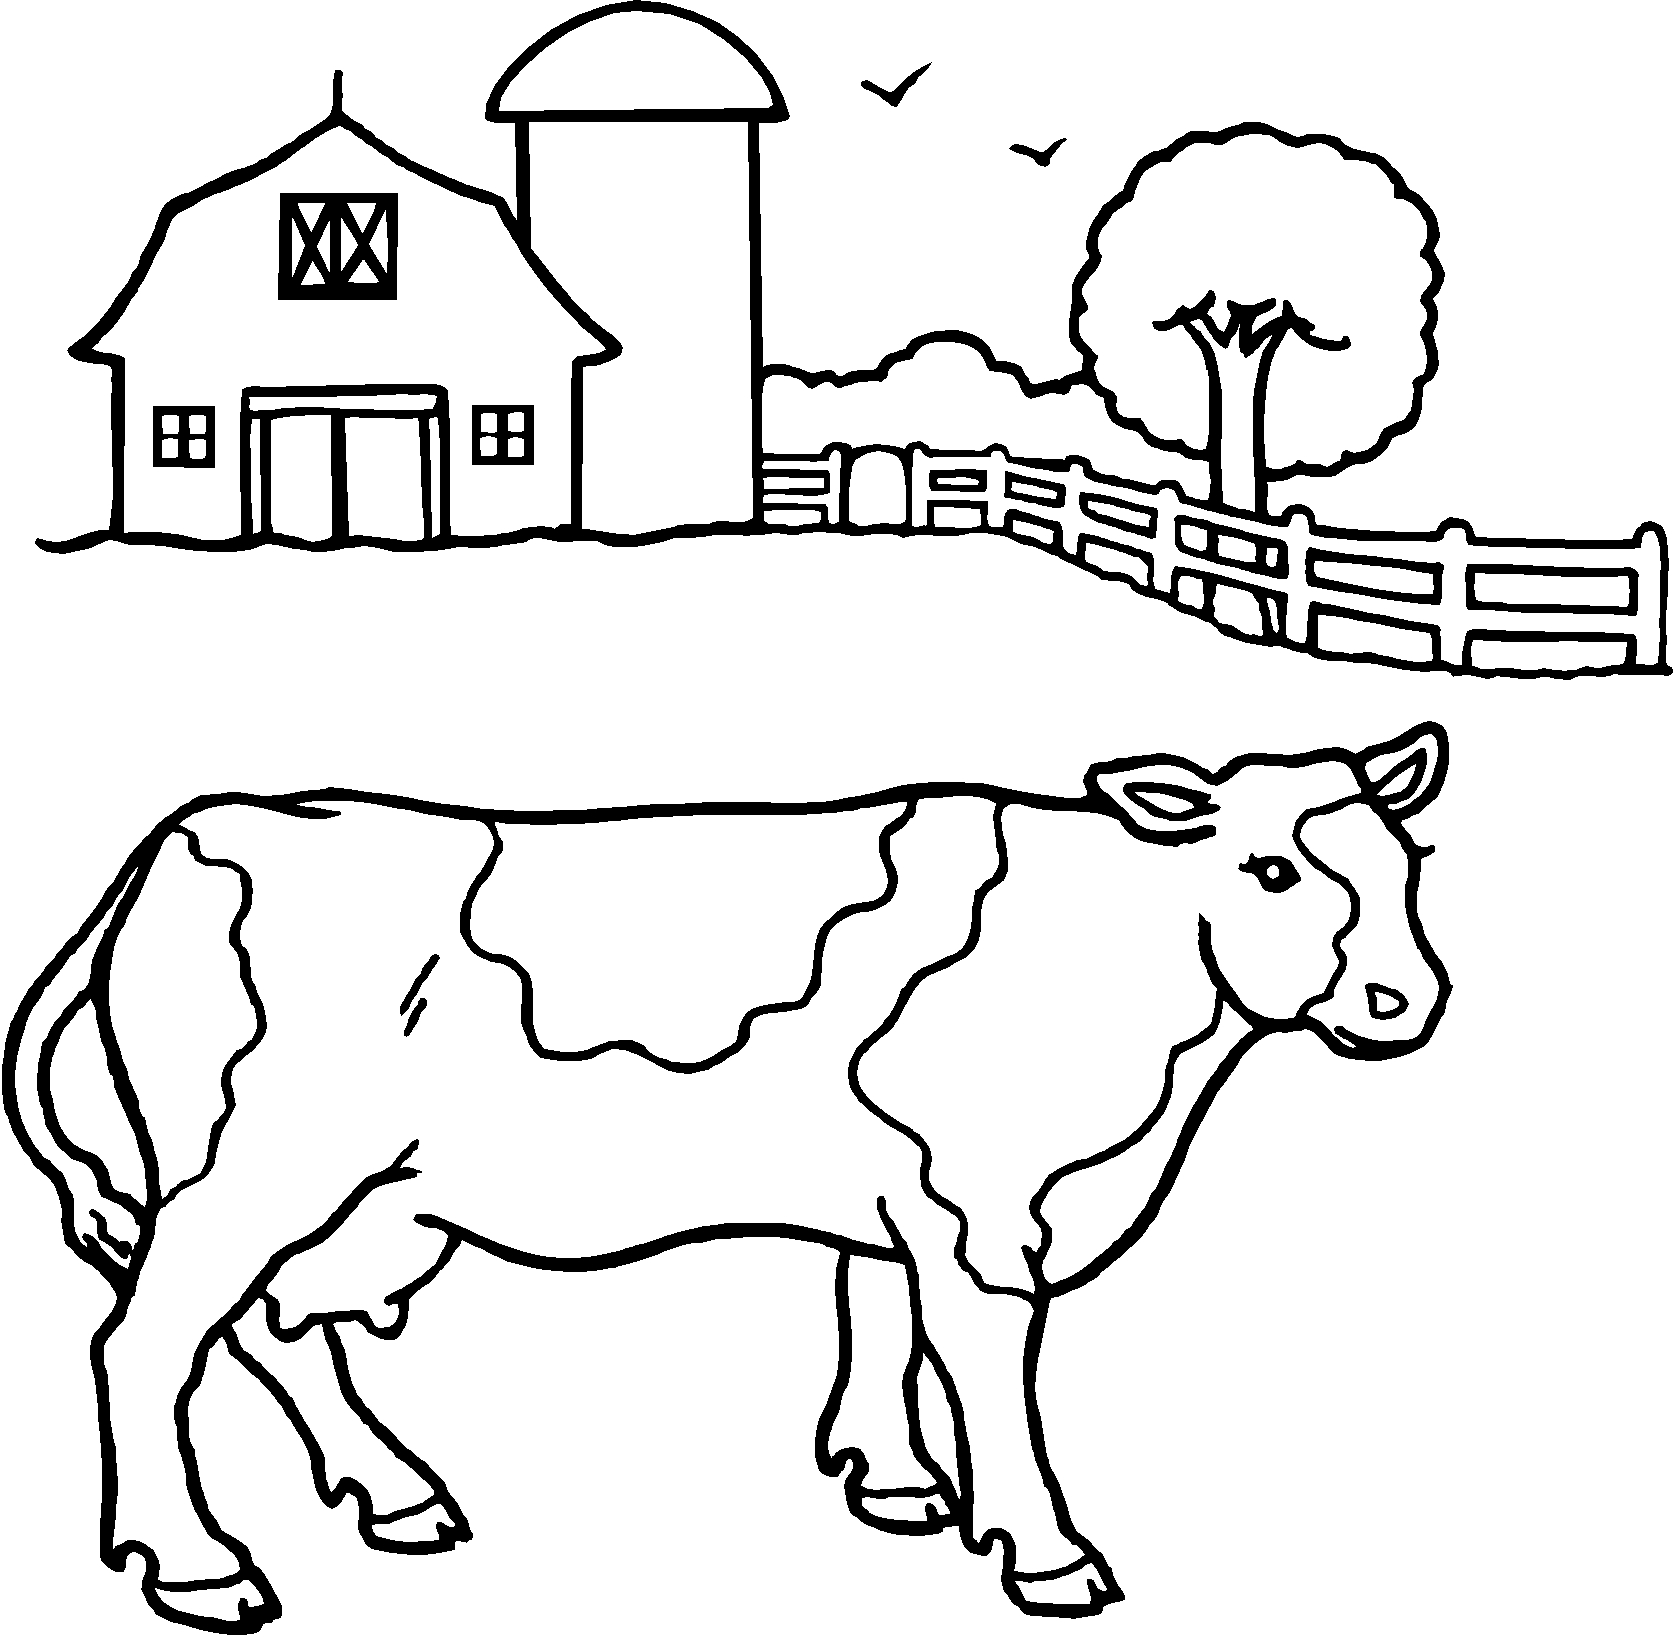 1674x1638 New Dairy Cow Coloring Pages Gallery Free Coloring Pages